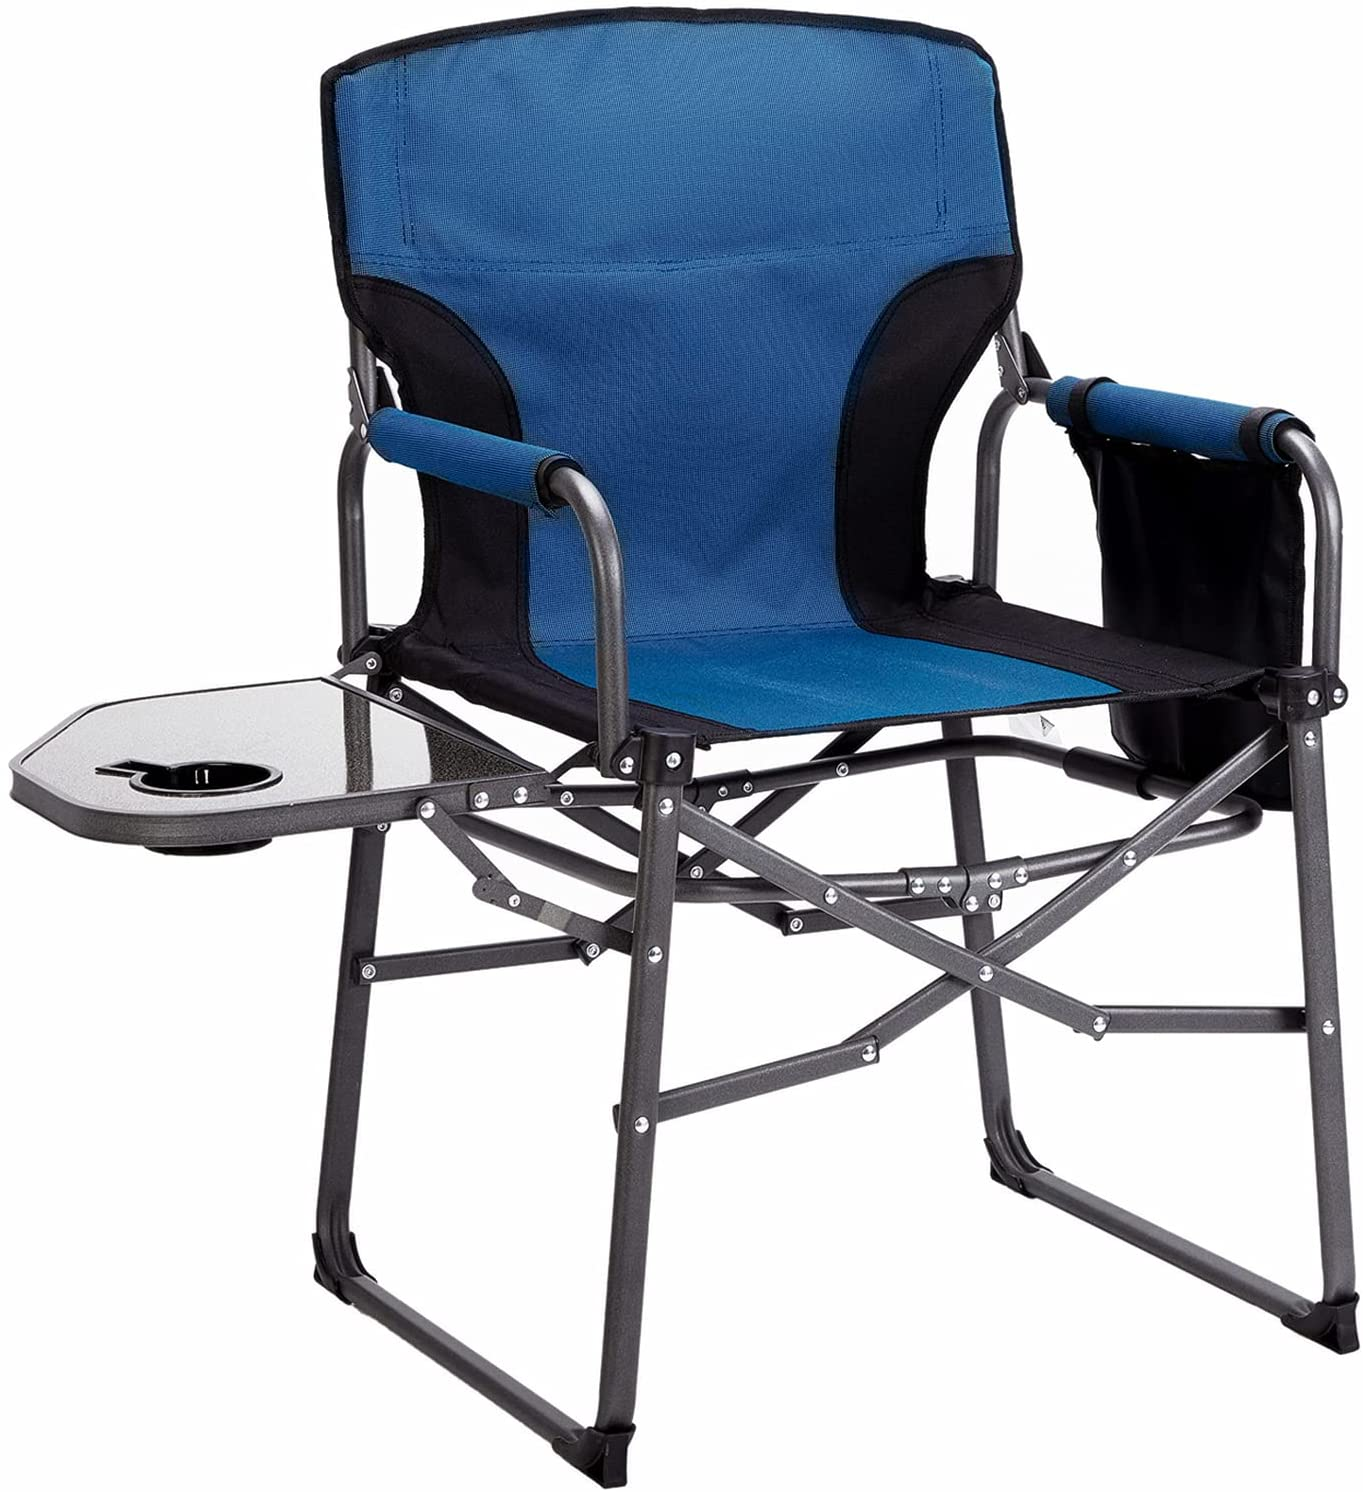 MaiuFun Folding Max 77% OFF Camping Chair with Easy-to-use D Portable Table Side Outdoor